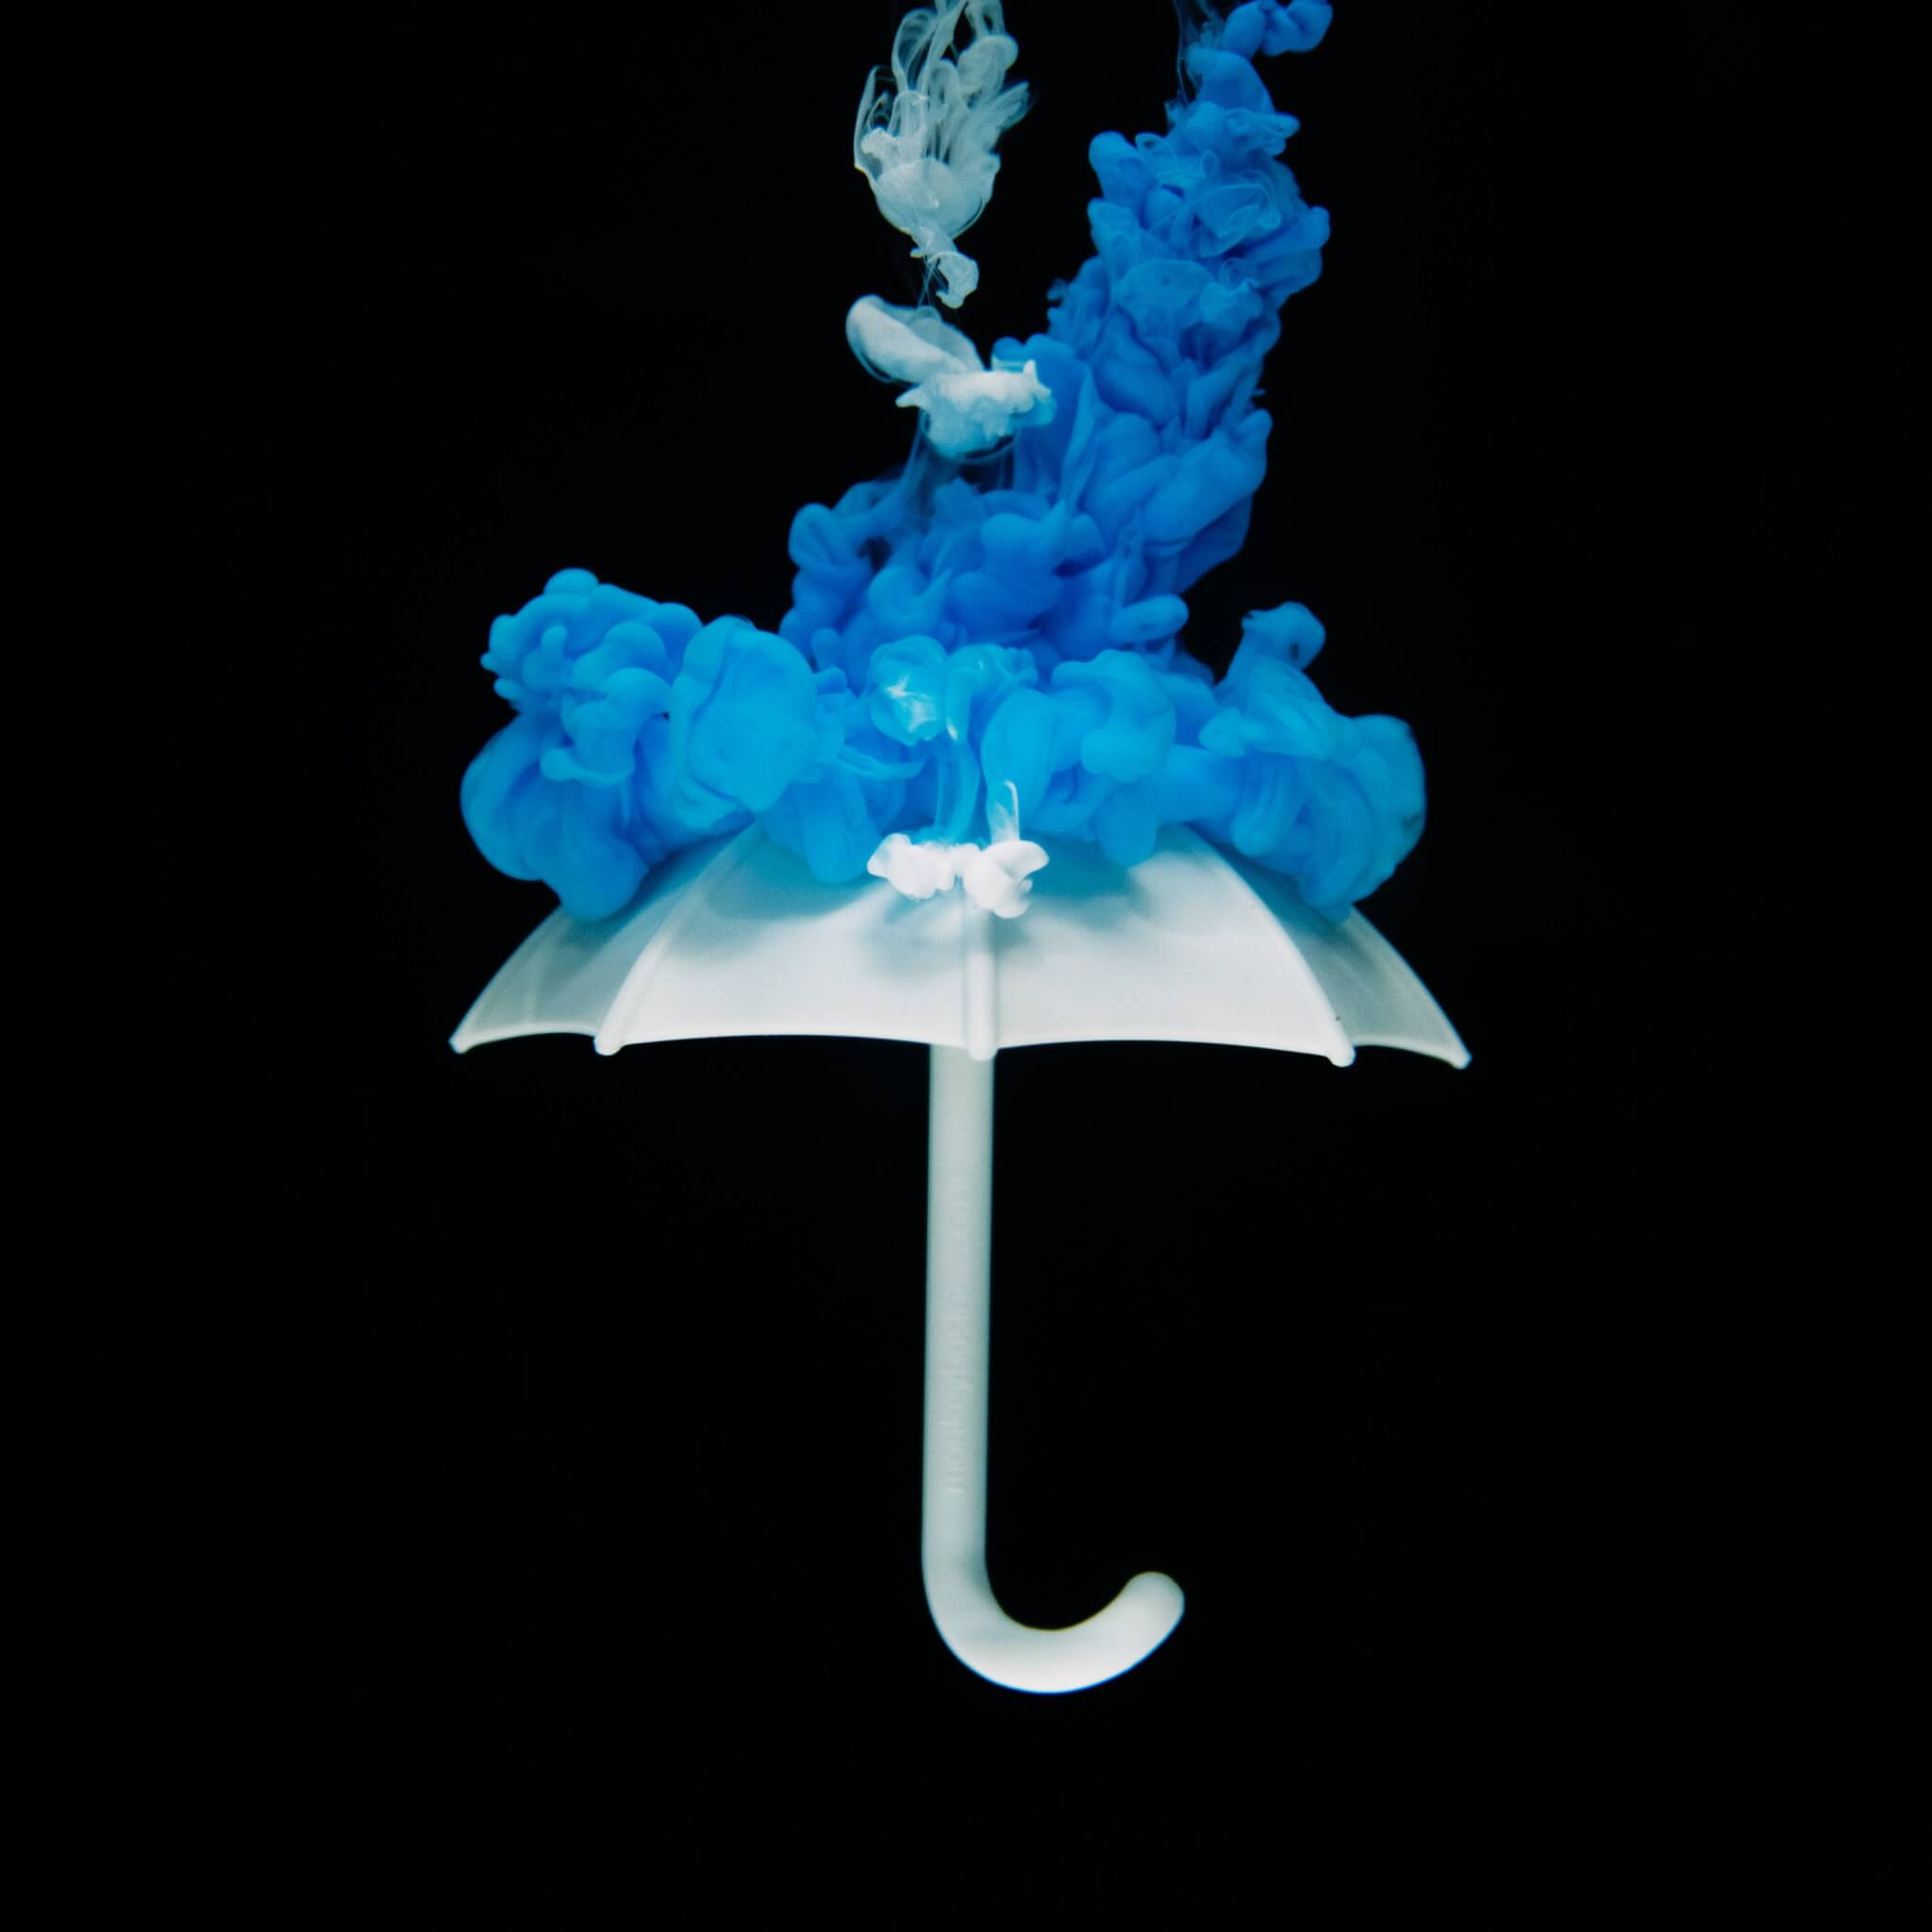 umbrella with blue ink splash